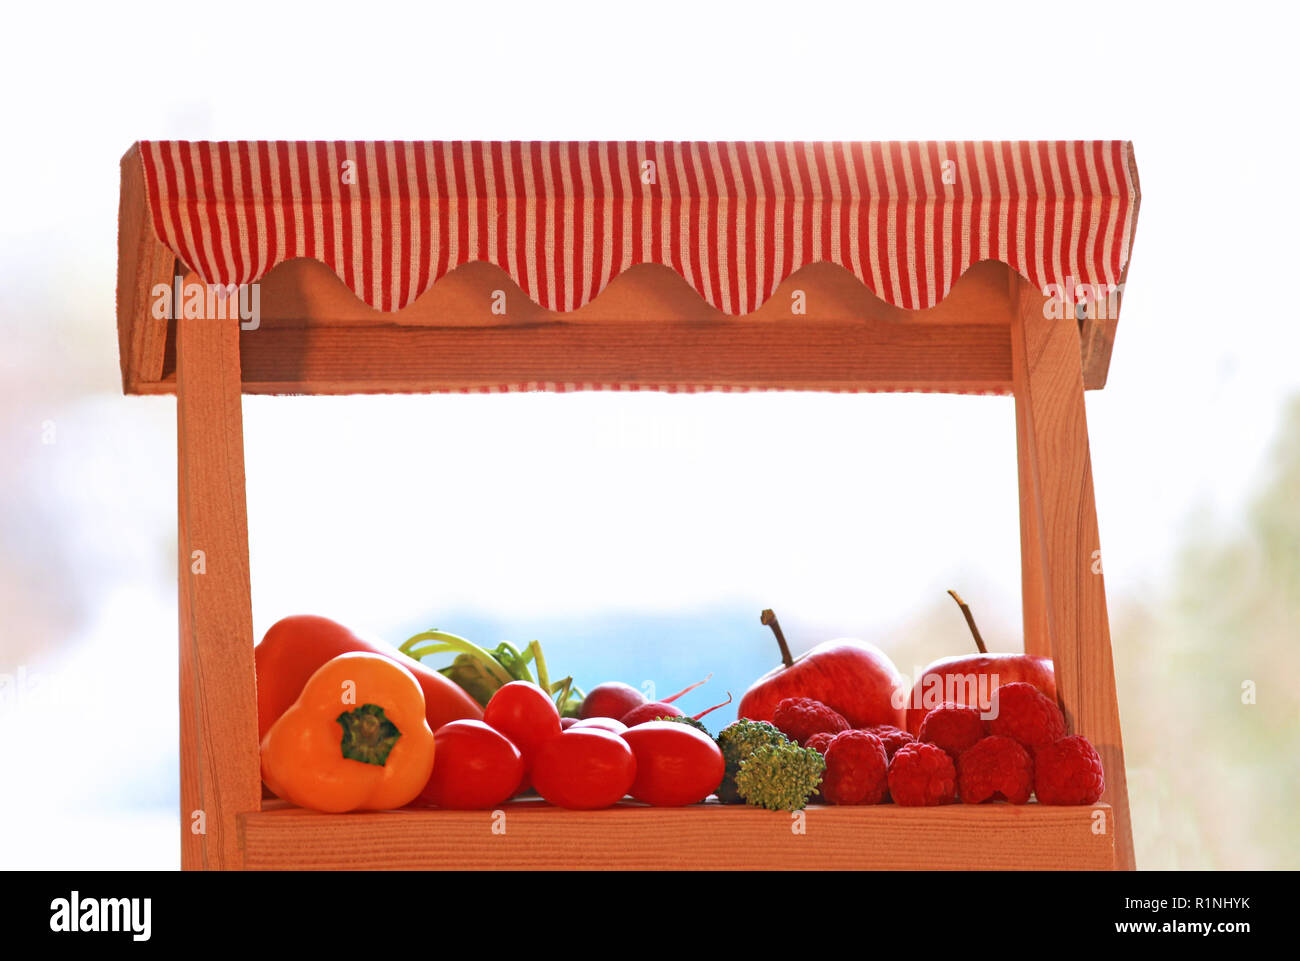 miniature market stall with vegetables and fruits, blurred background - Stock Image